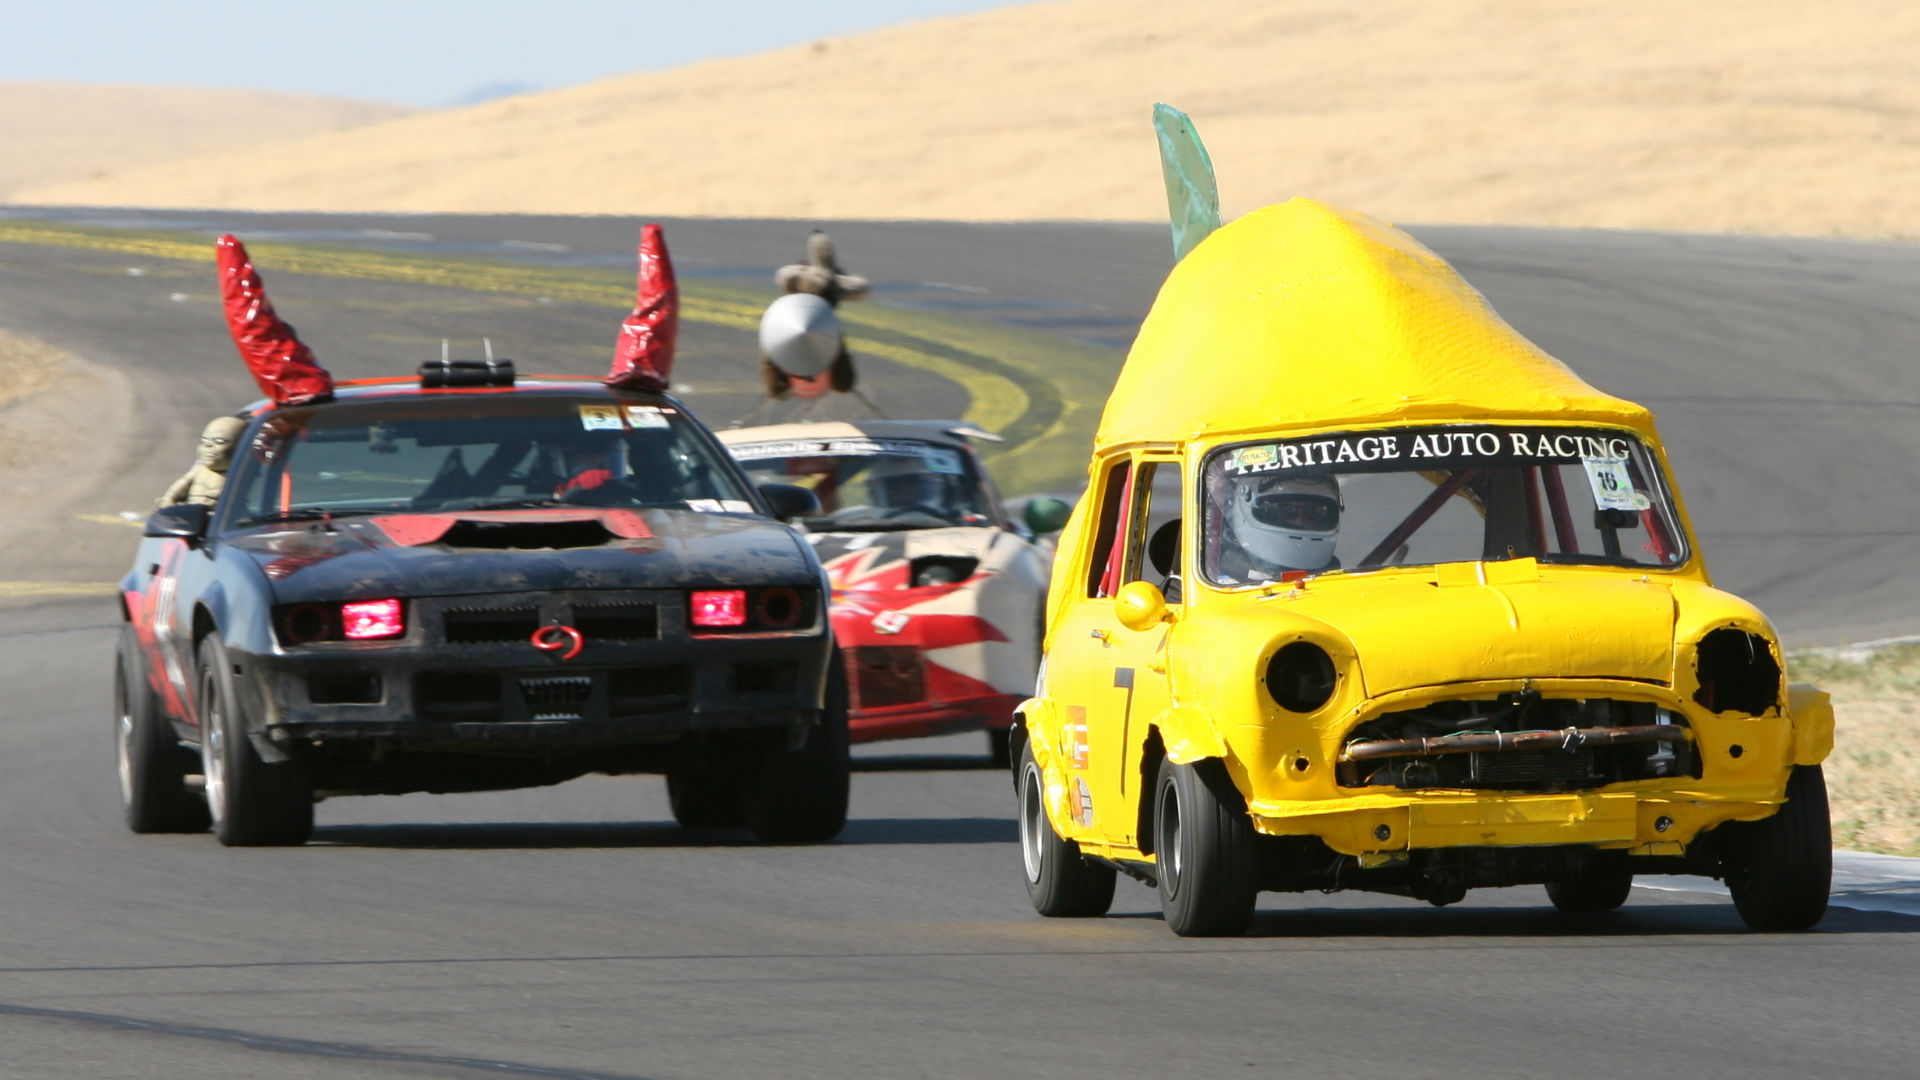 24 Hours of Lemons is like the 24 Hours of Le Mans — just funnier and cheaper